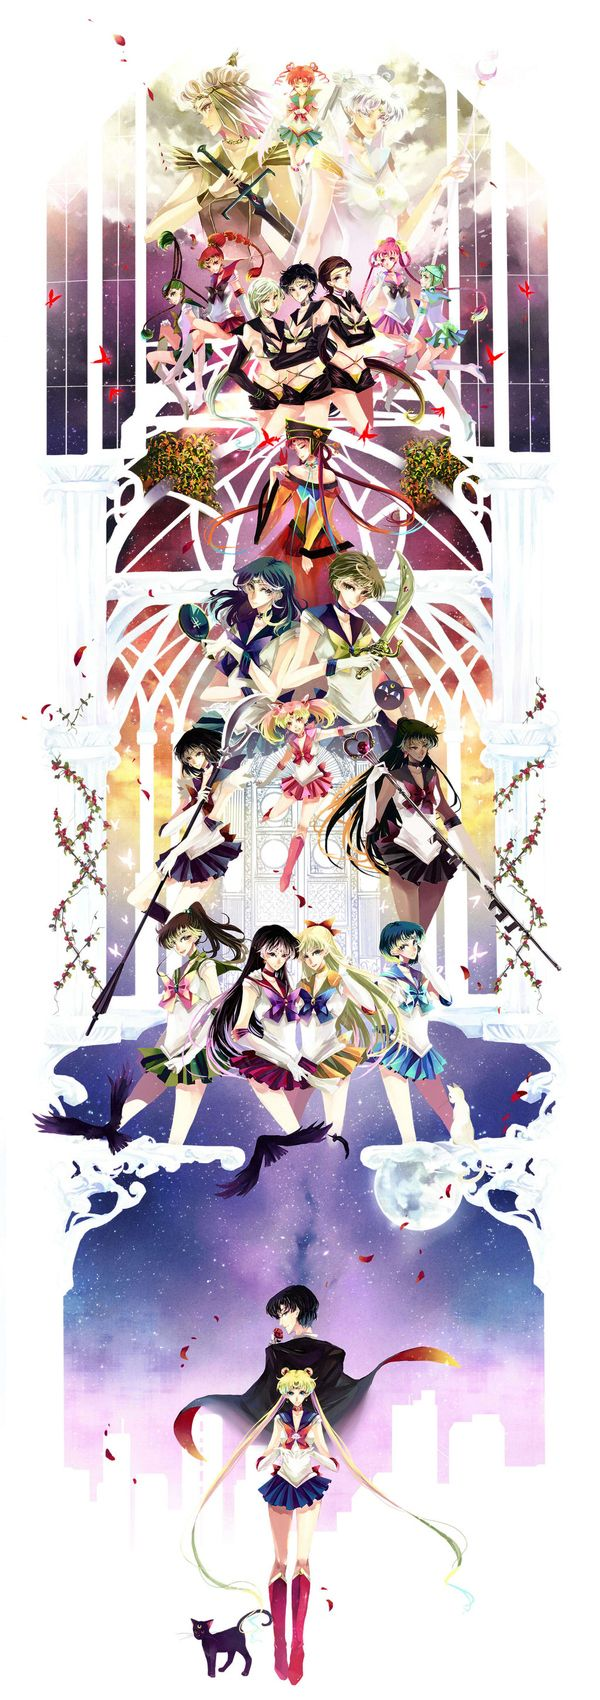 Super Pretty (And Very Large) Sailor MoonArt